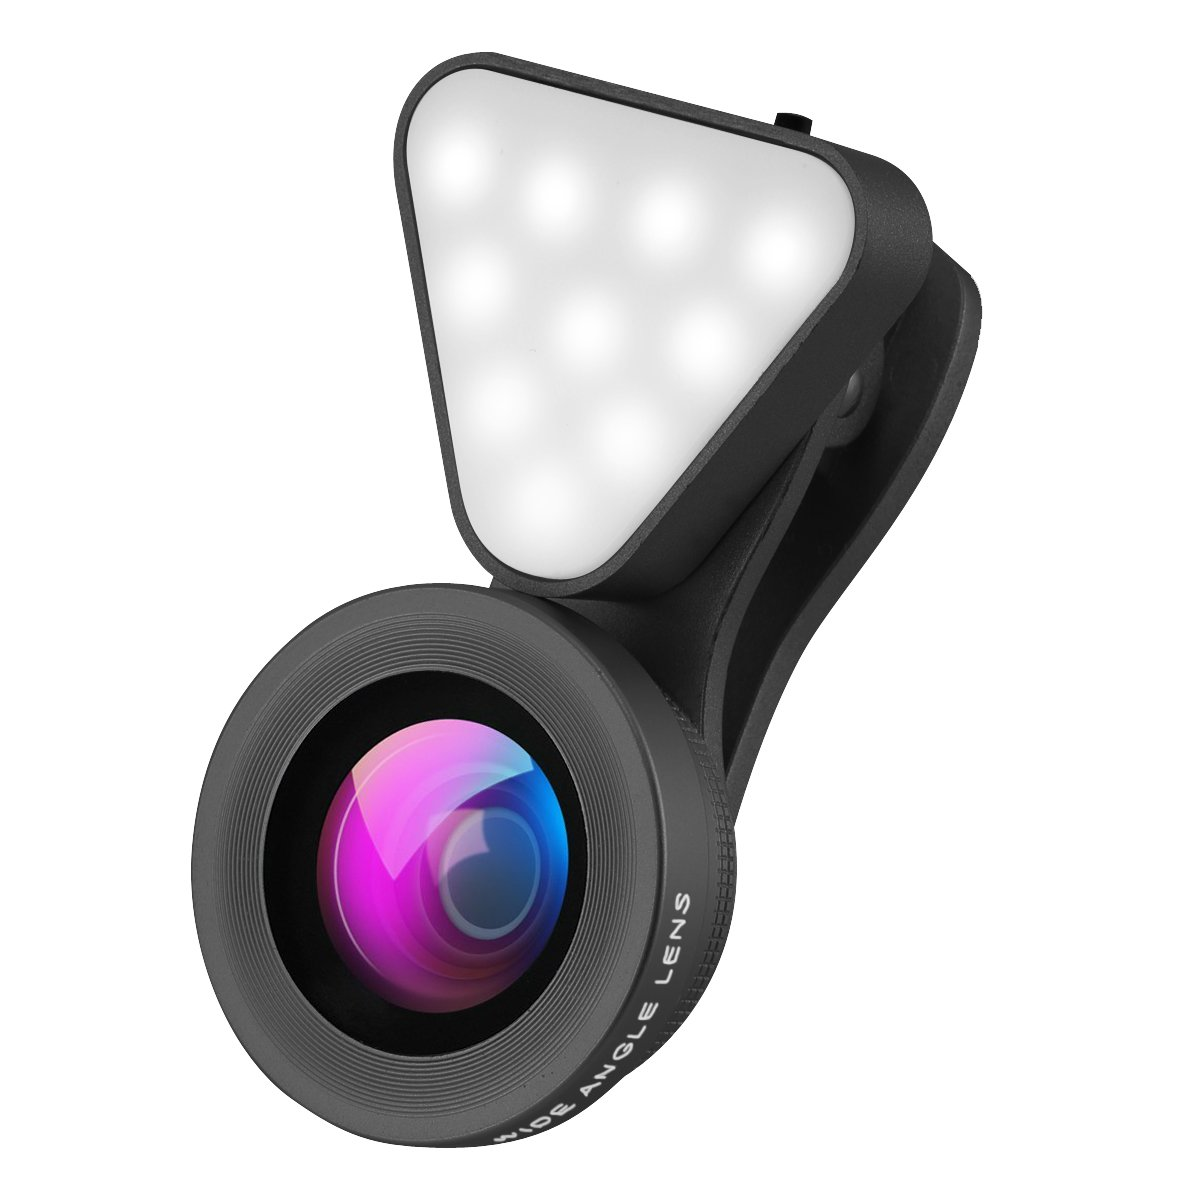 Wallfire 3 in 1 Cell Phone Lens with 3 Adjustable Brightness Fill Light ,15X Macro 0.4X-0.6X Wide Angle Lens , HD camera lens for iPhone 7/7 Plus/6s/6s Plus/6/5, Samsung & Most Smartphones by Wallfire